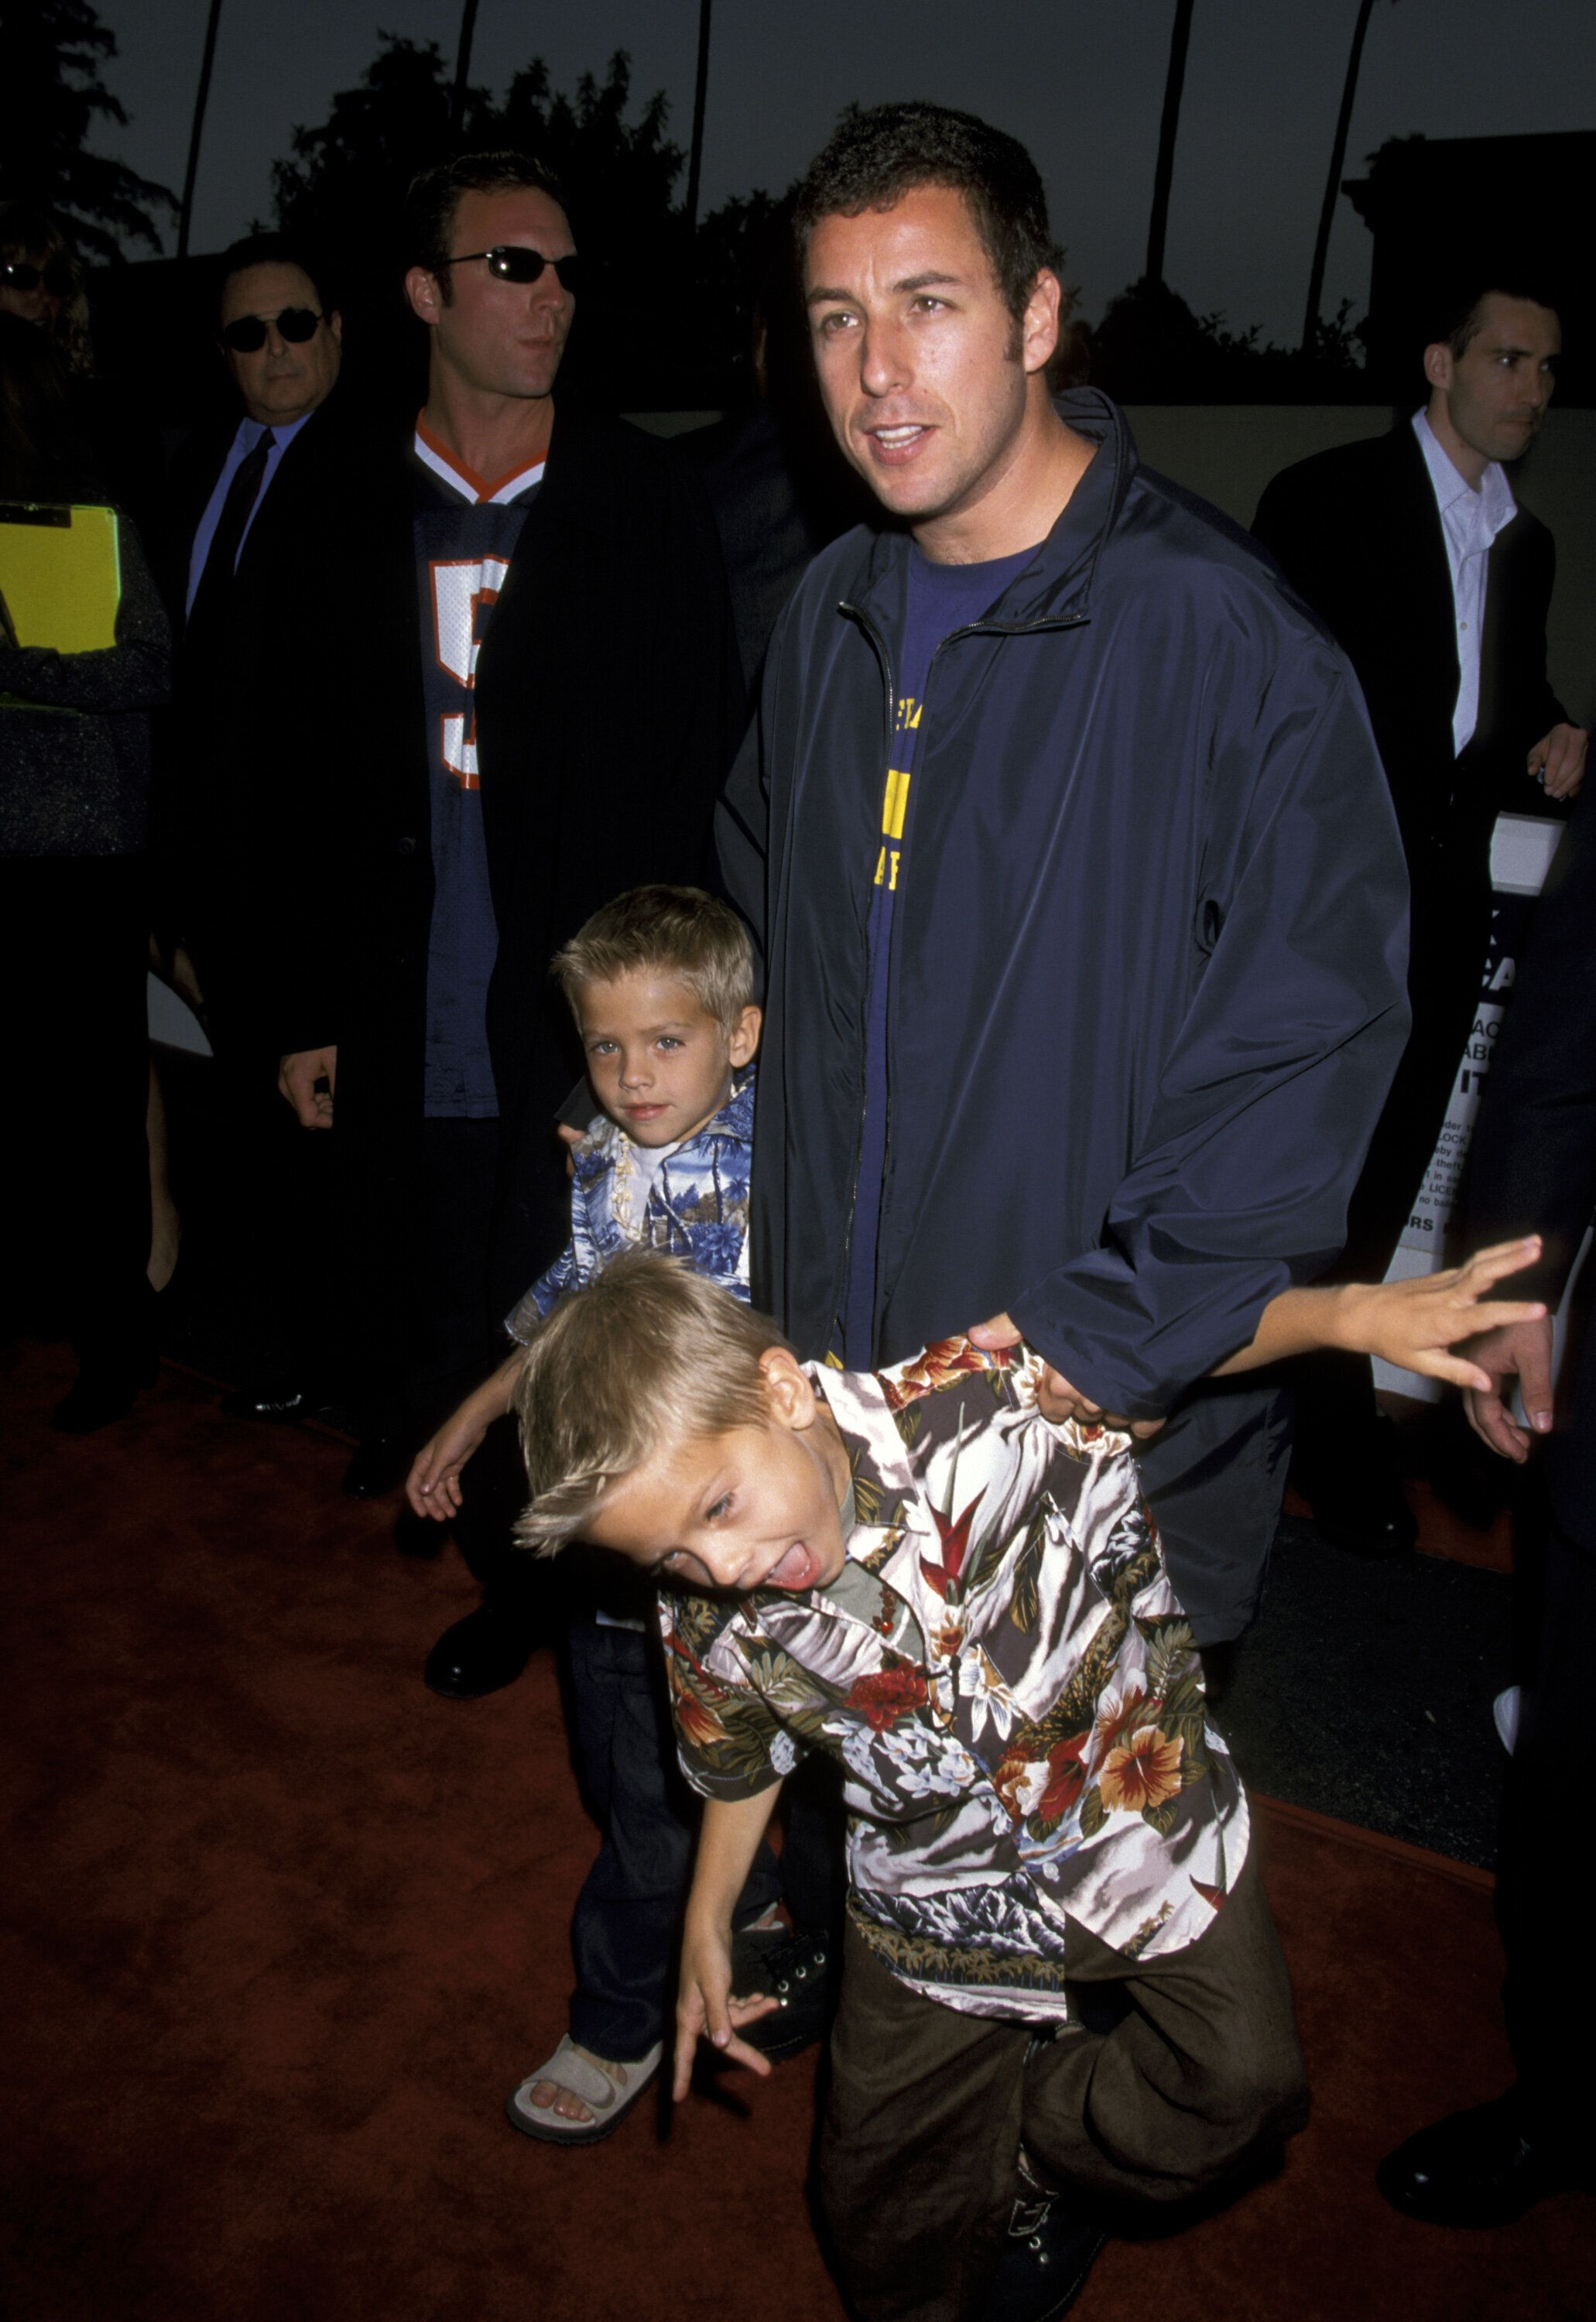 Adam Sandler, Cole Sprouse and Dylan Sprouse at the Avco Cinema in Westwood, California, in 1999.